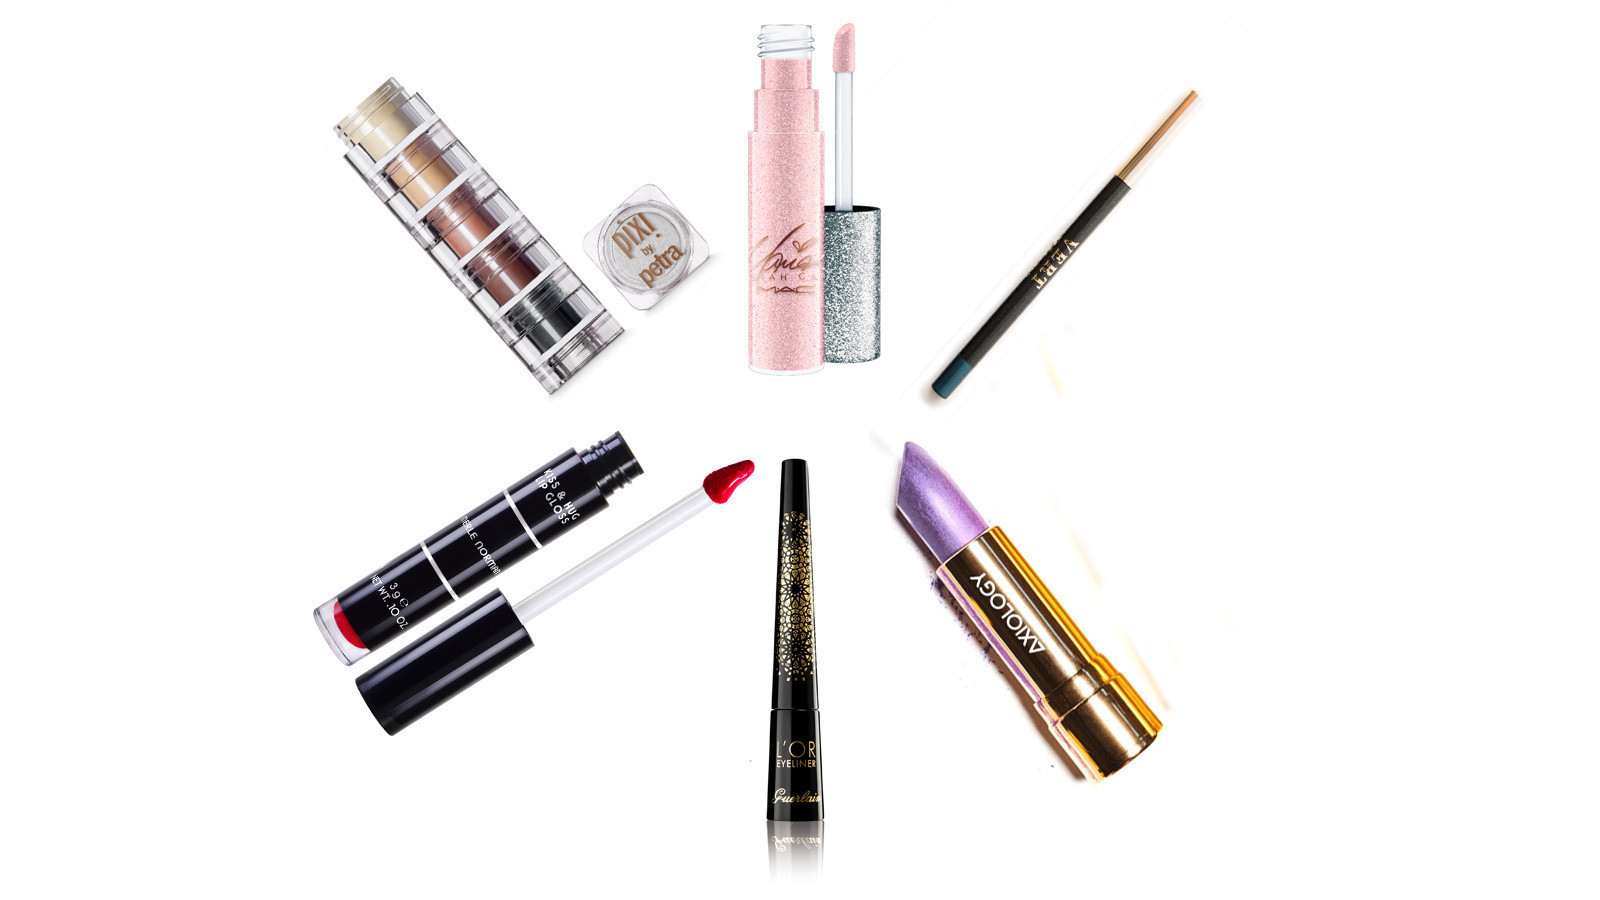 Forget about subtle makeup. For this holiday season, embrace gloss, glitz and shimmer